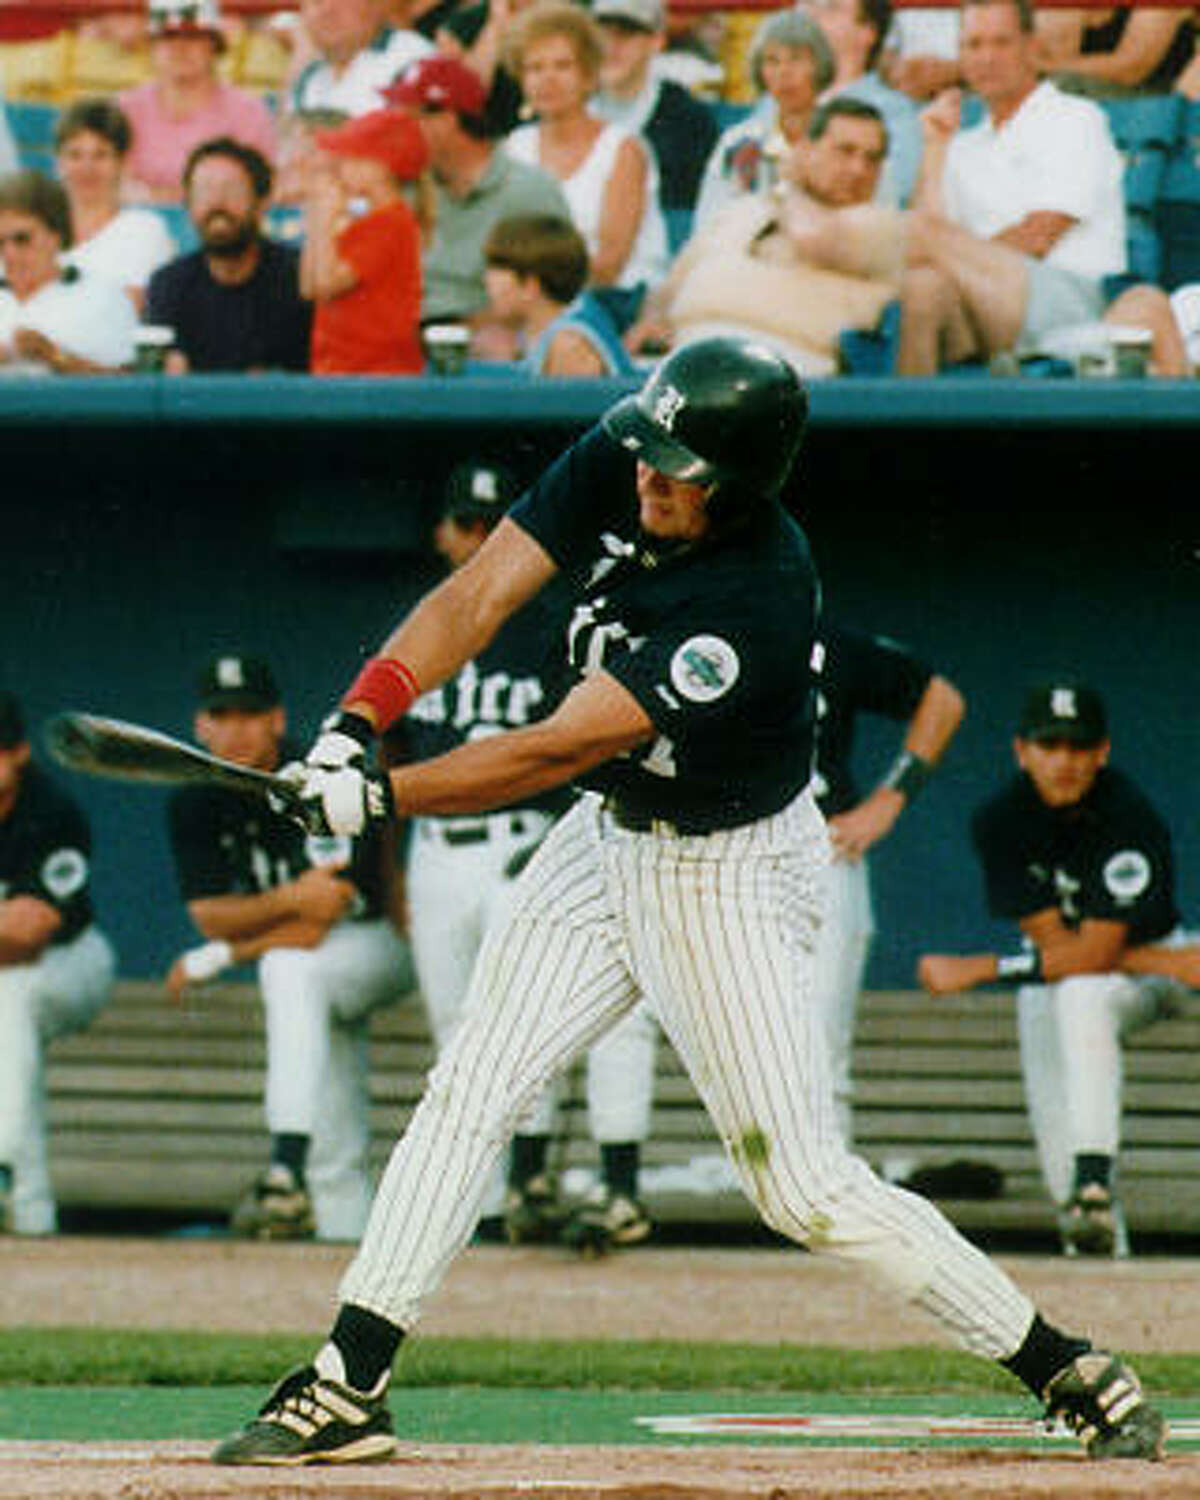 Lance Berkman , 1B. Years: 1995-97. The case for: With Berkman, perception and reality intersect. Berkman is intrinsically linked to Rice baseball, and his career numbers validate his superstar status. He ranks first in Rice annals in runs scored (233), runs batted in (272), home runs (67), total bases (572) and slugging percentage (.772).